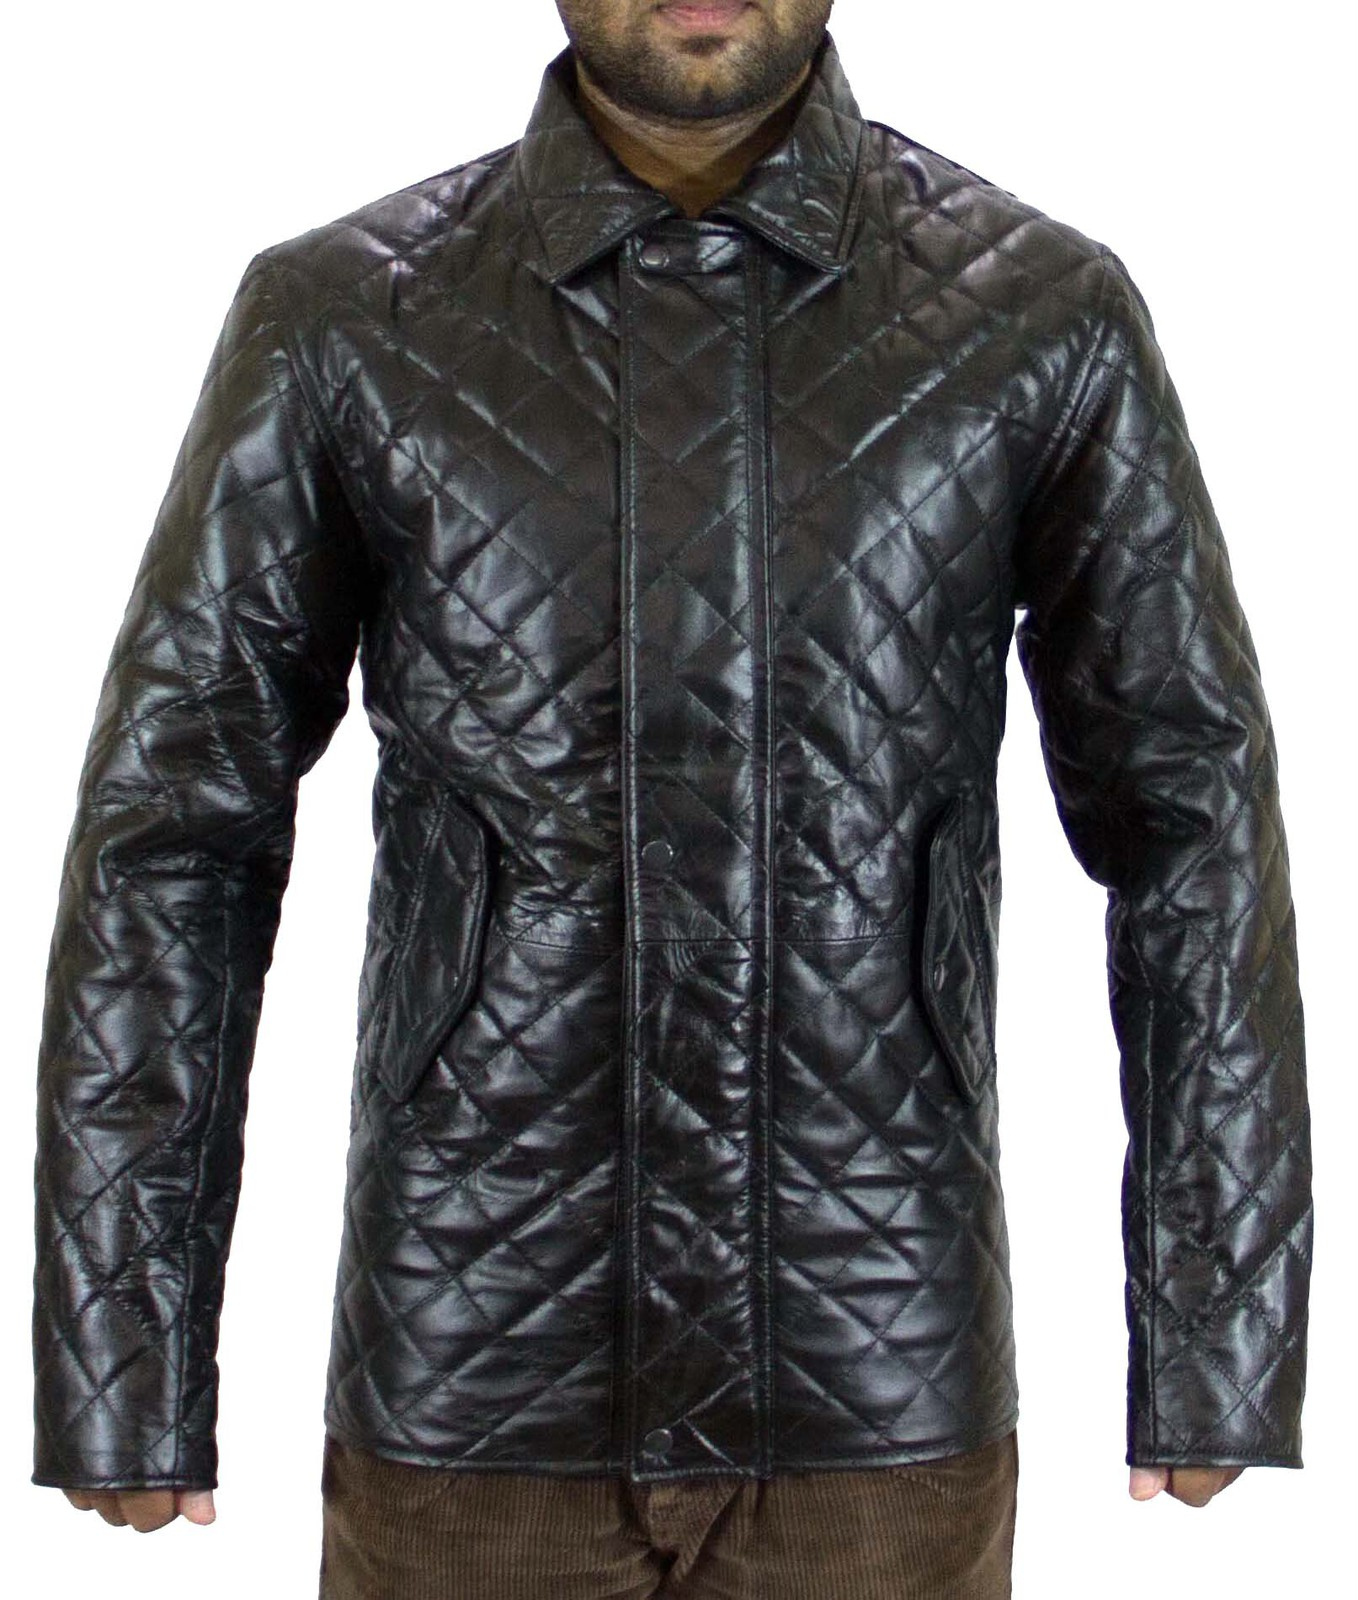 A classic leather jacket you'll want in your closet forever! It has a center front zipper and three front zipper pockets. The quilting on the sleeves and sides of this jacket are the stand-out special detail that makes this style truly unique.